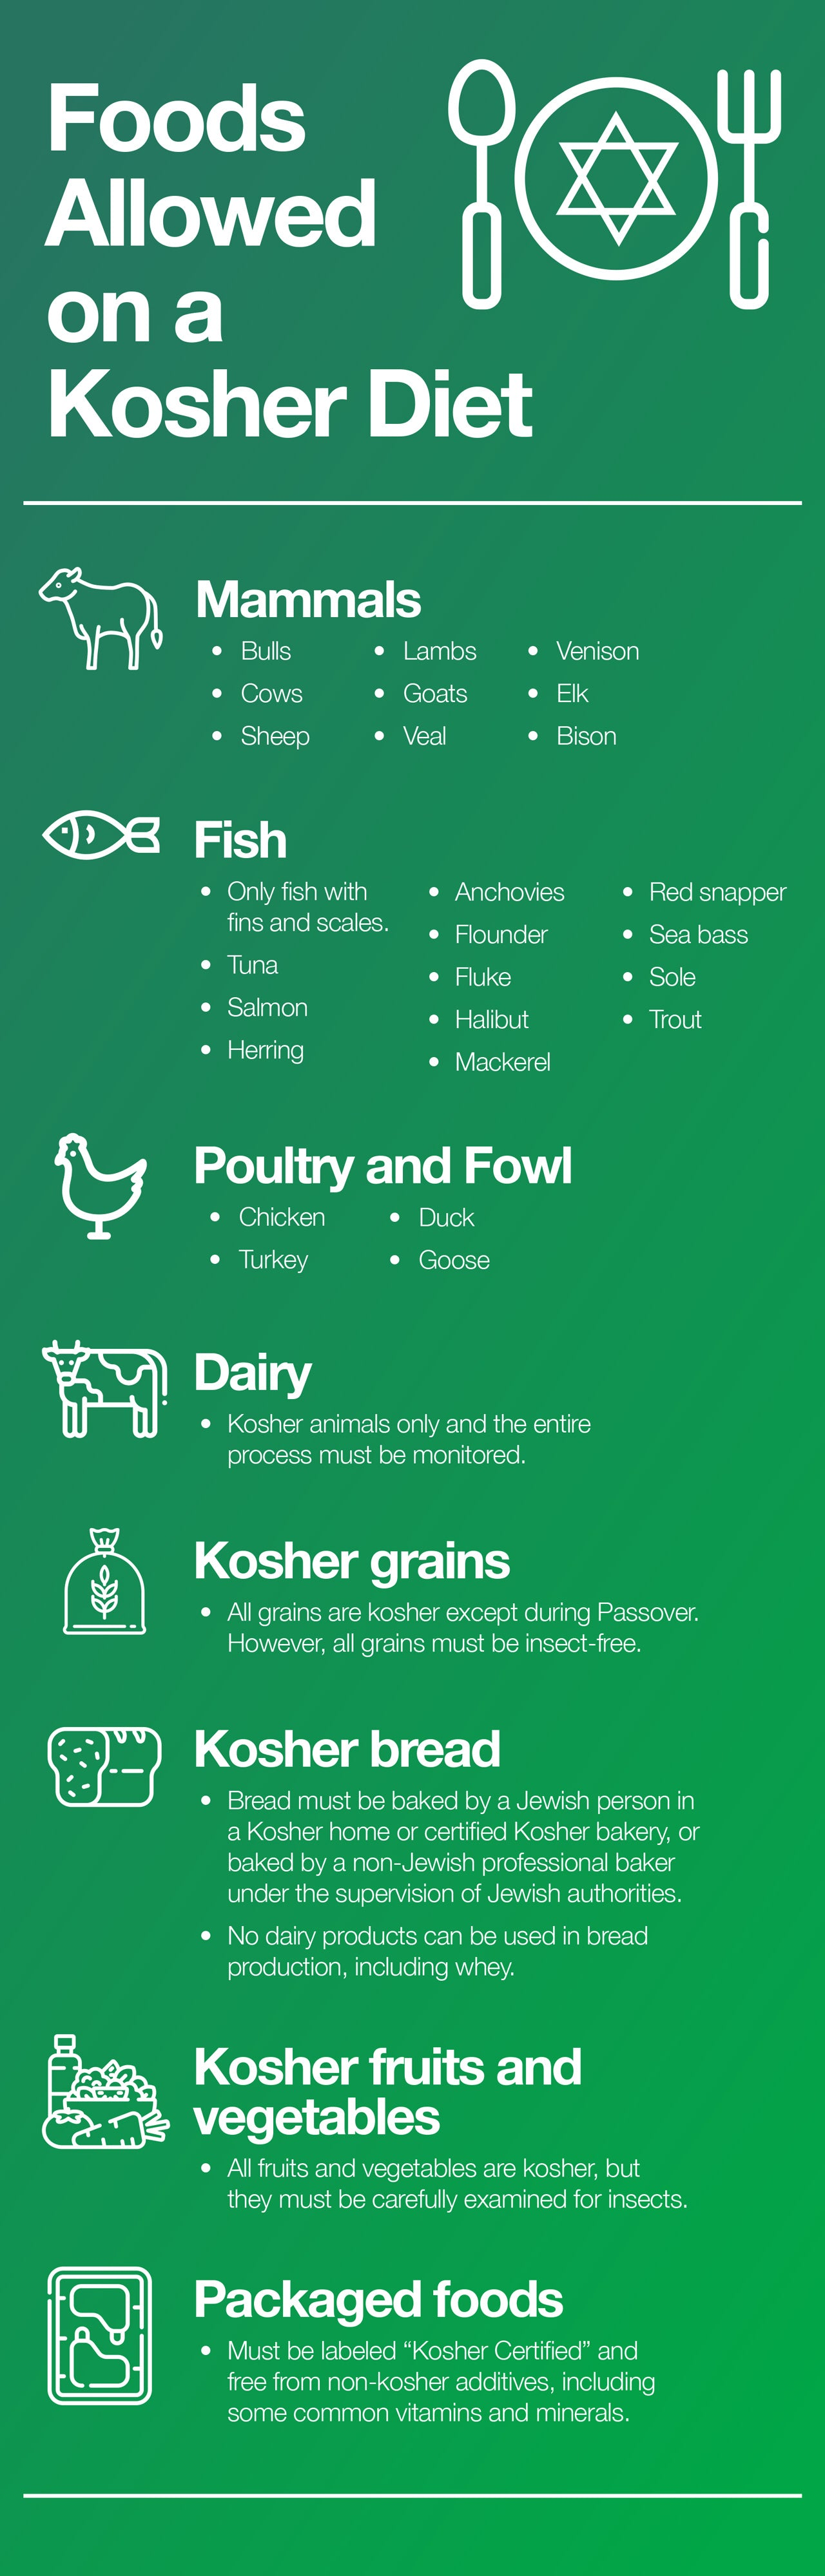 Foods Allowed on a Kosher Diet